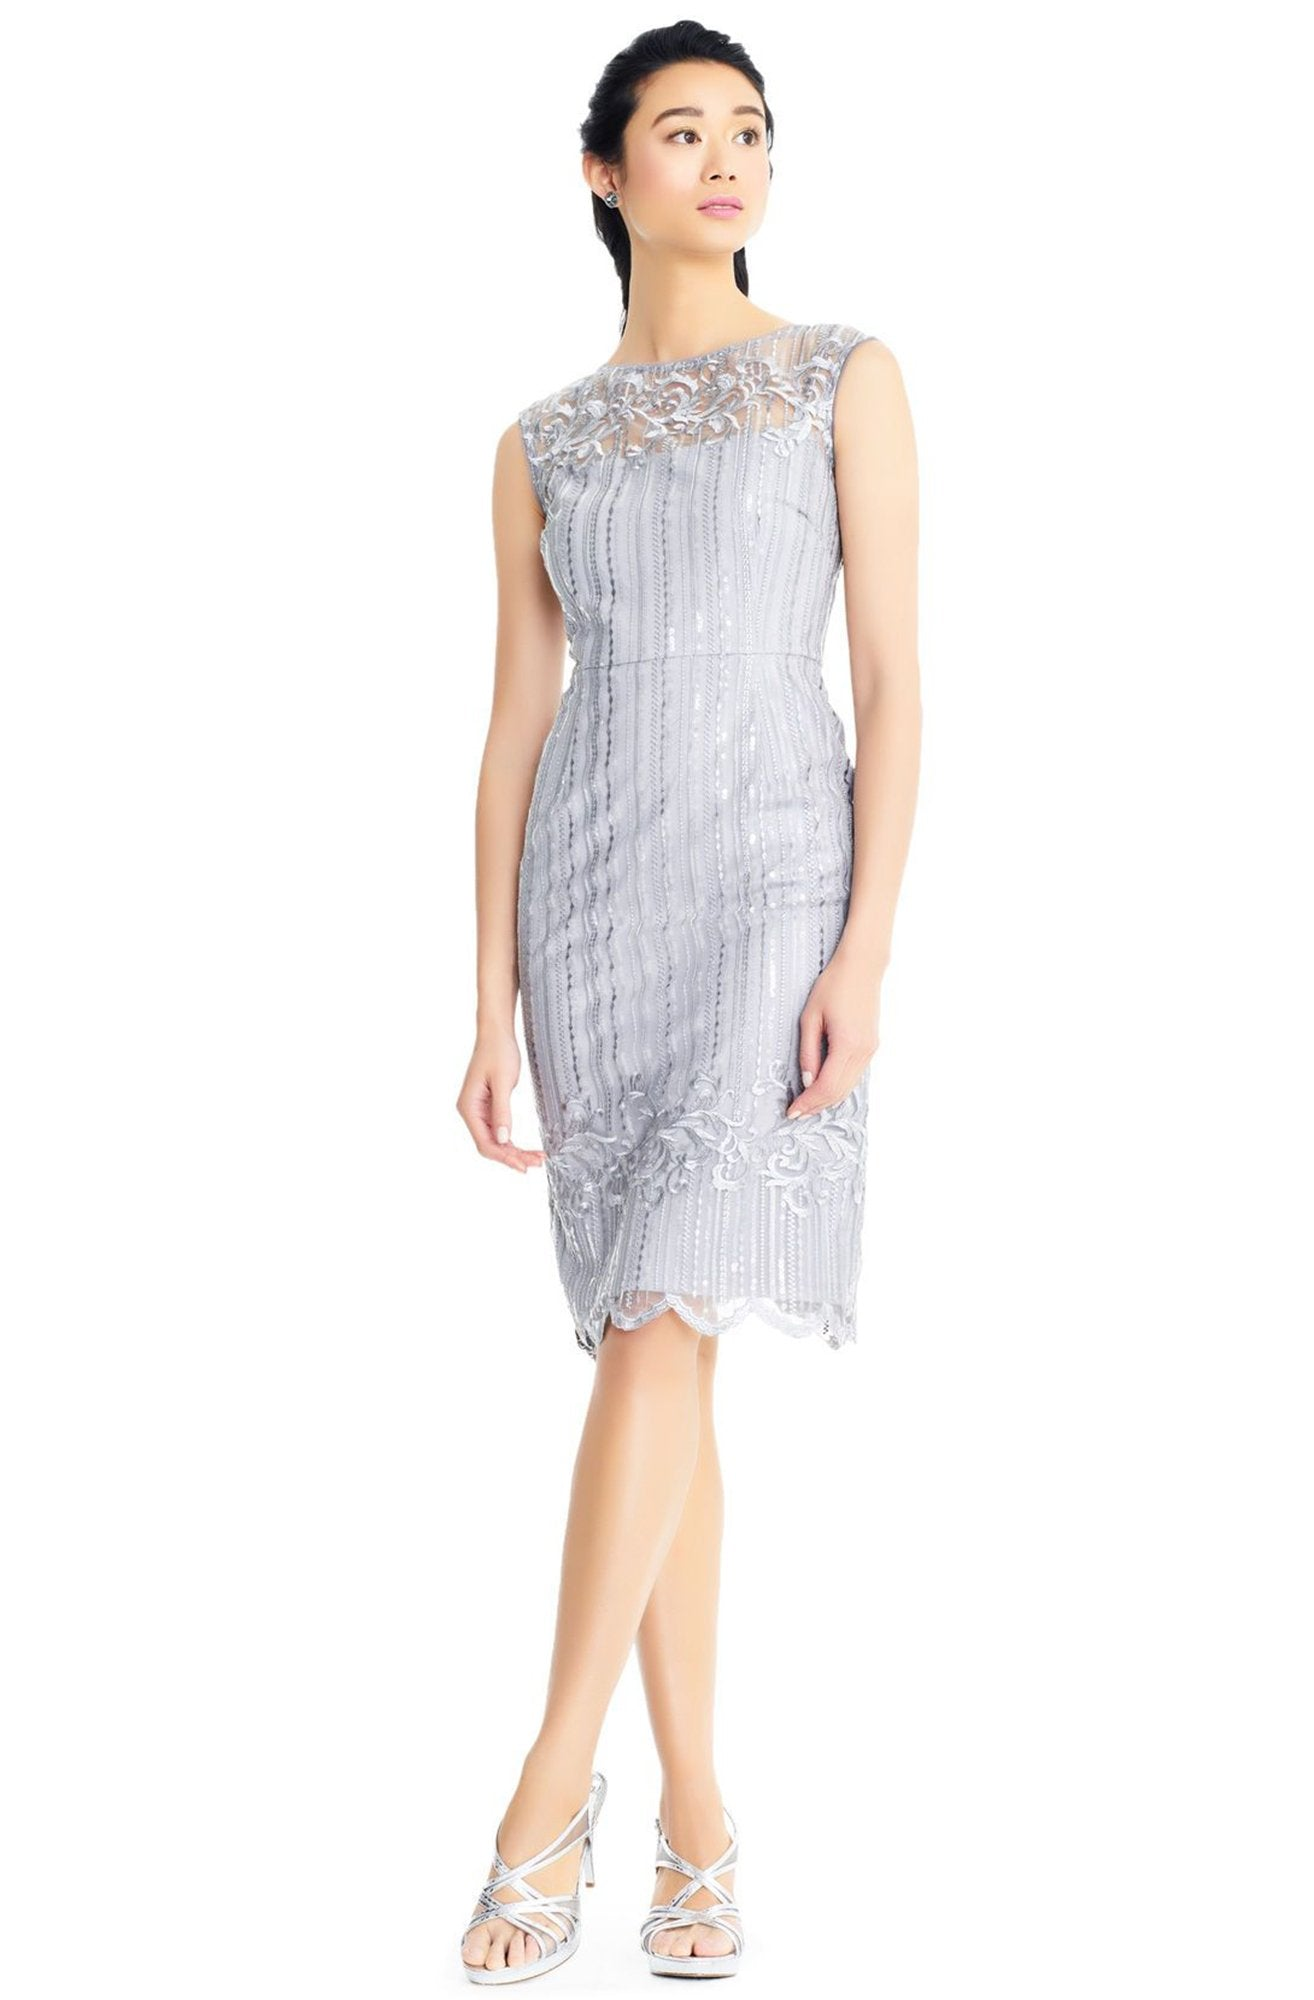 Adrianna Papell - AP1E203525 Embellished Knee Length Fitted Dress In Silver